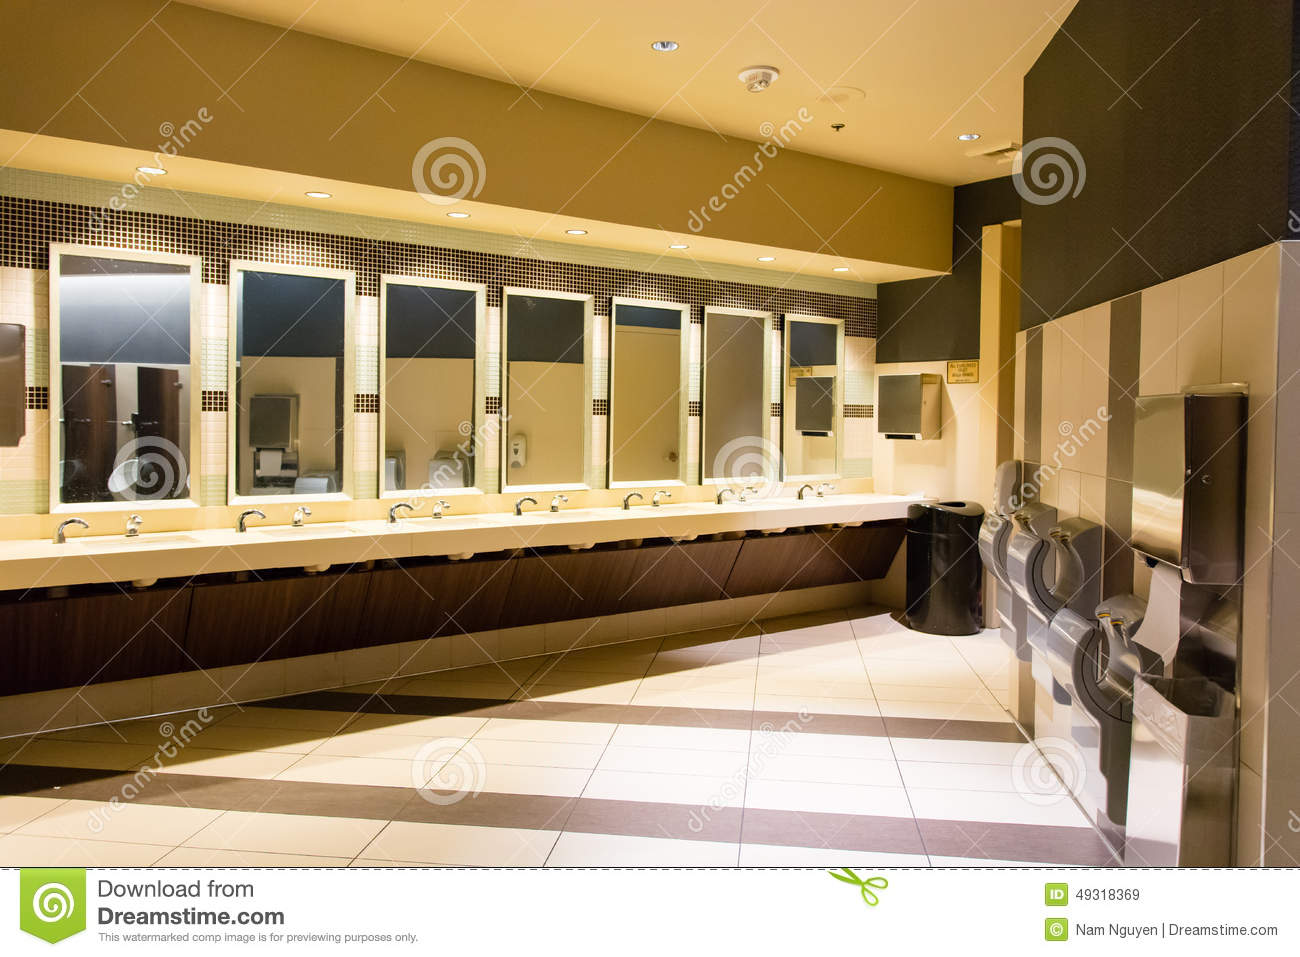 Sinks And Hand Dryers In Public Restroom Stock Image